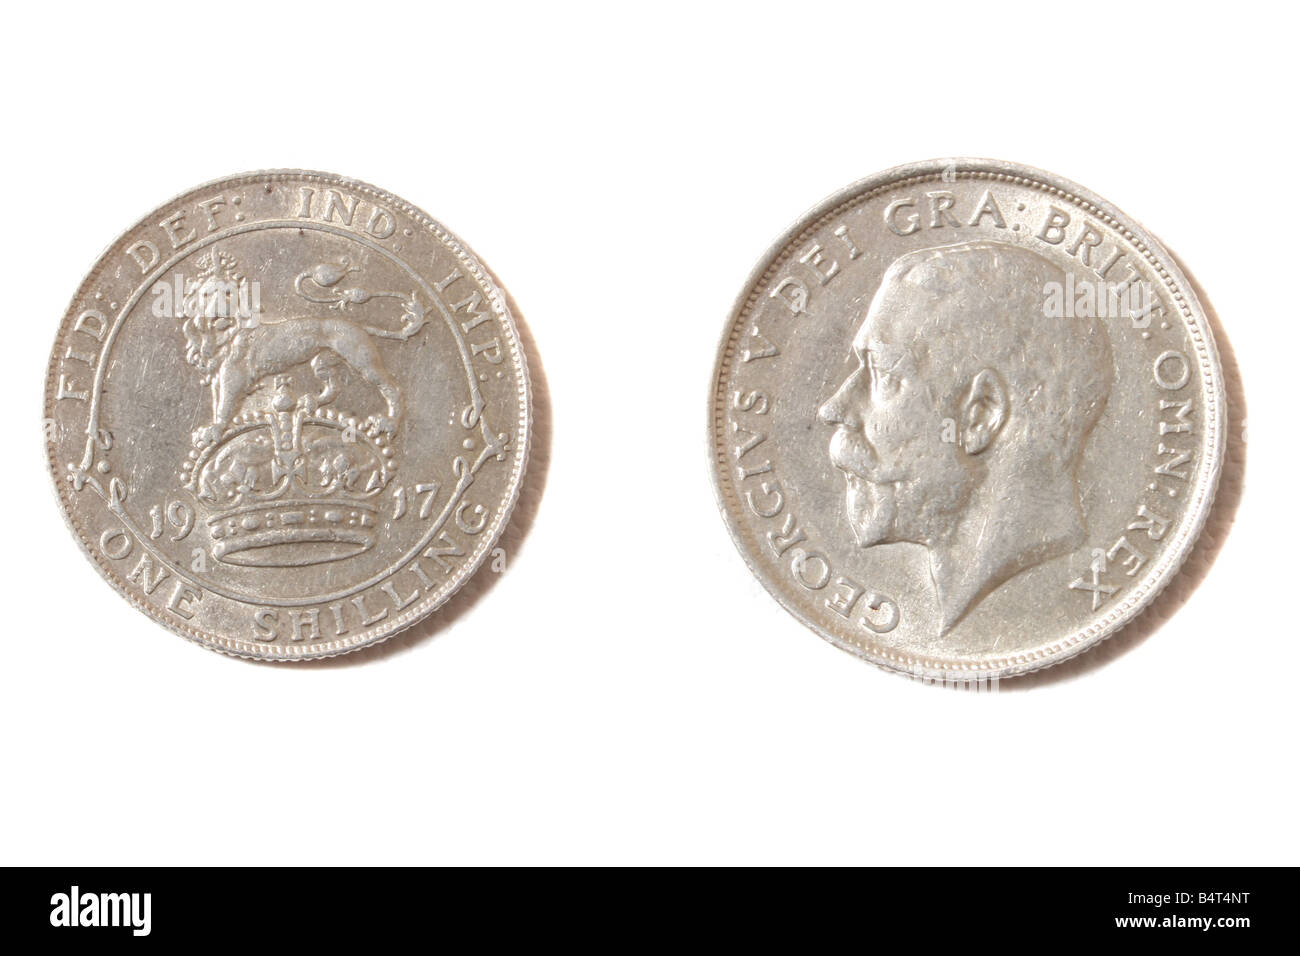 5p Coin Stock Photos Amp 5p Coin Stock Images